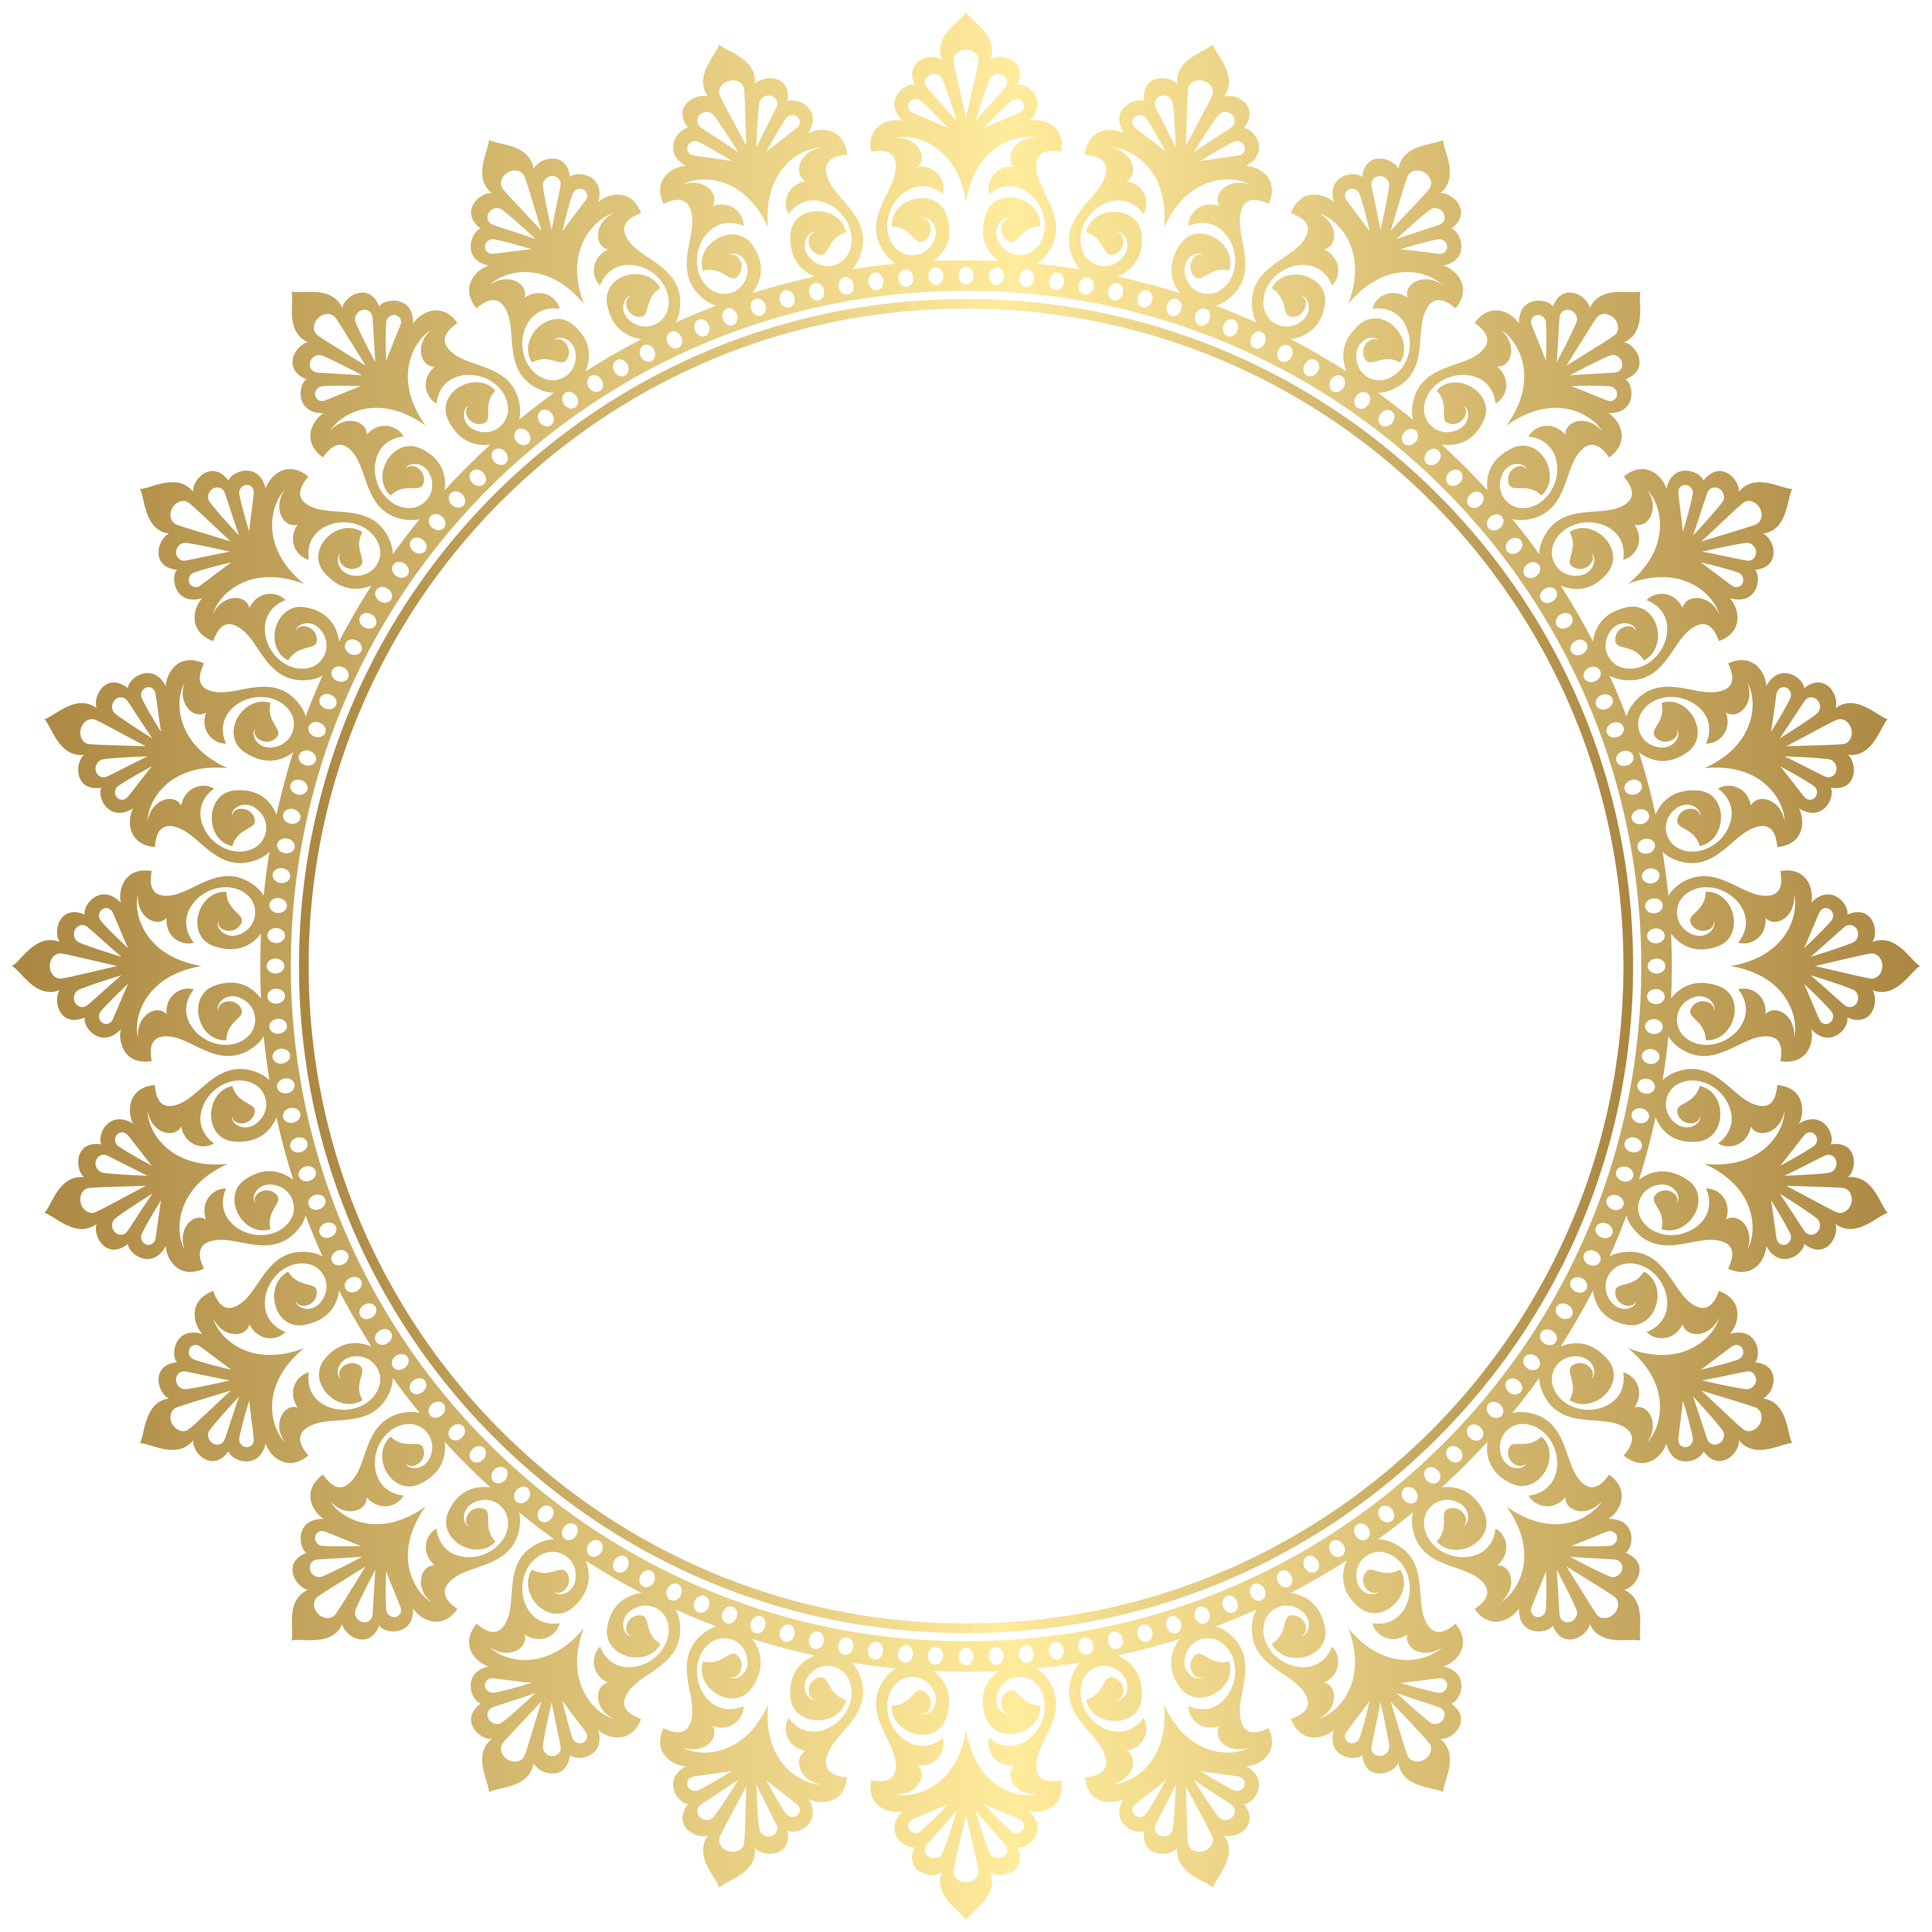 Rounded top queen crown clipart clip library download Round Border Frame Clip Art PNG Image | PNG GOLD | Pinterest | Round ... clip library download